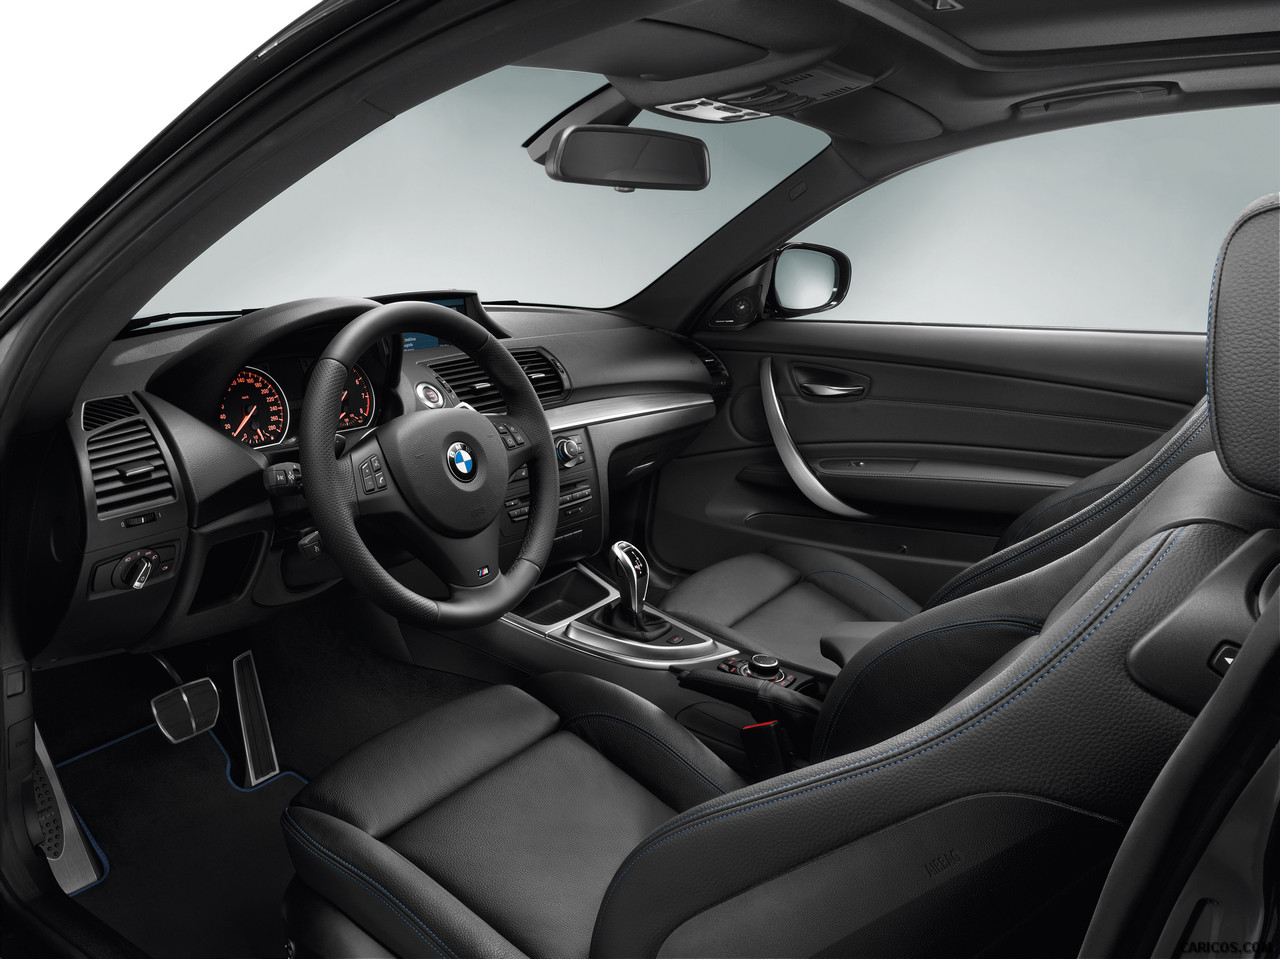 2012_bmw_1-series_special_editions_5_1280x960